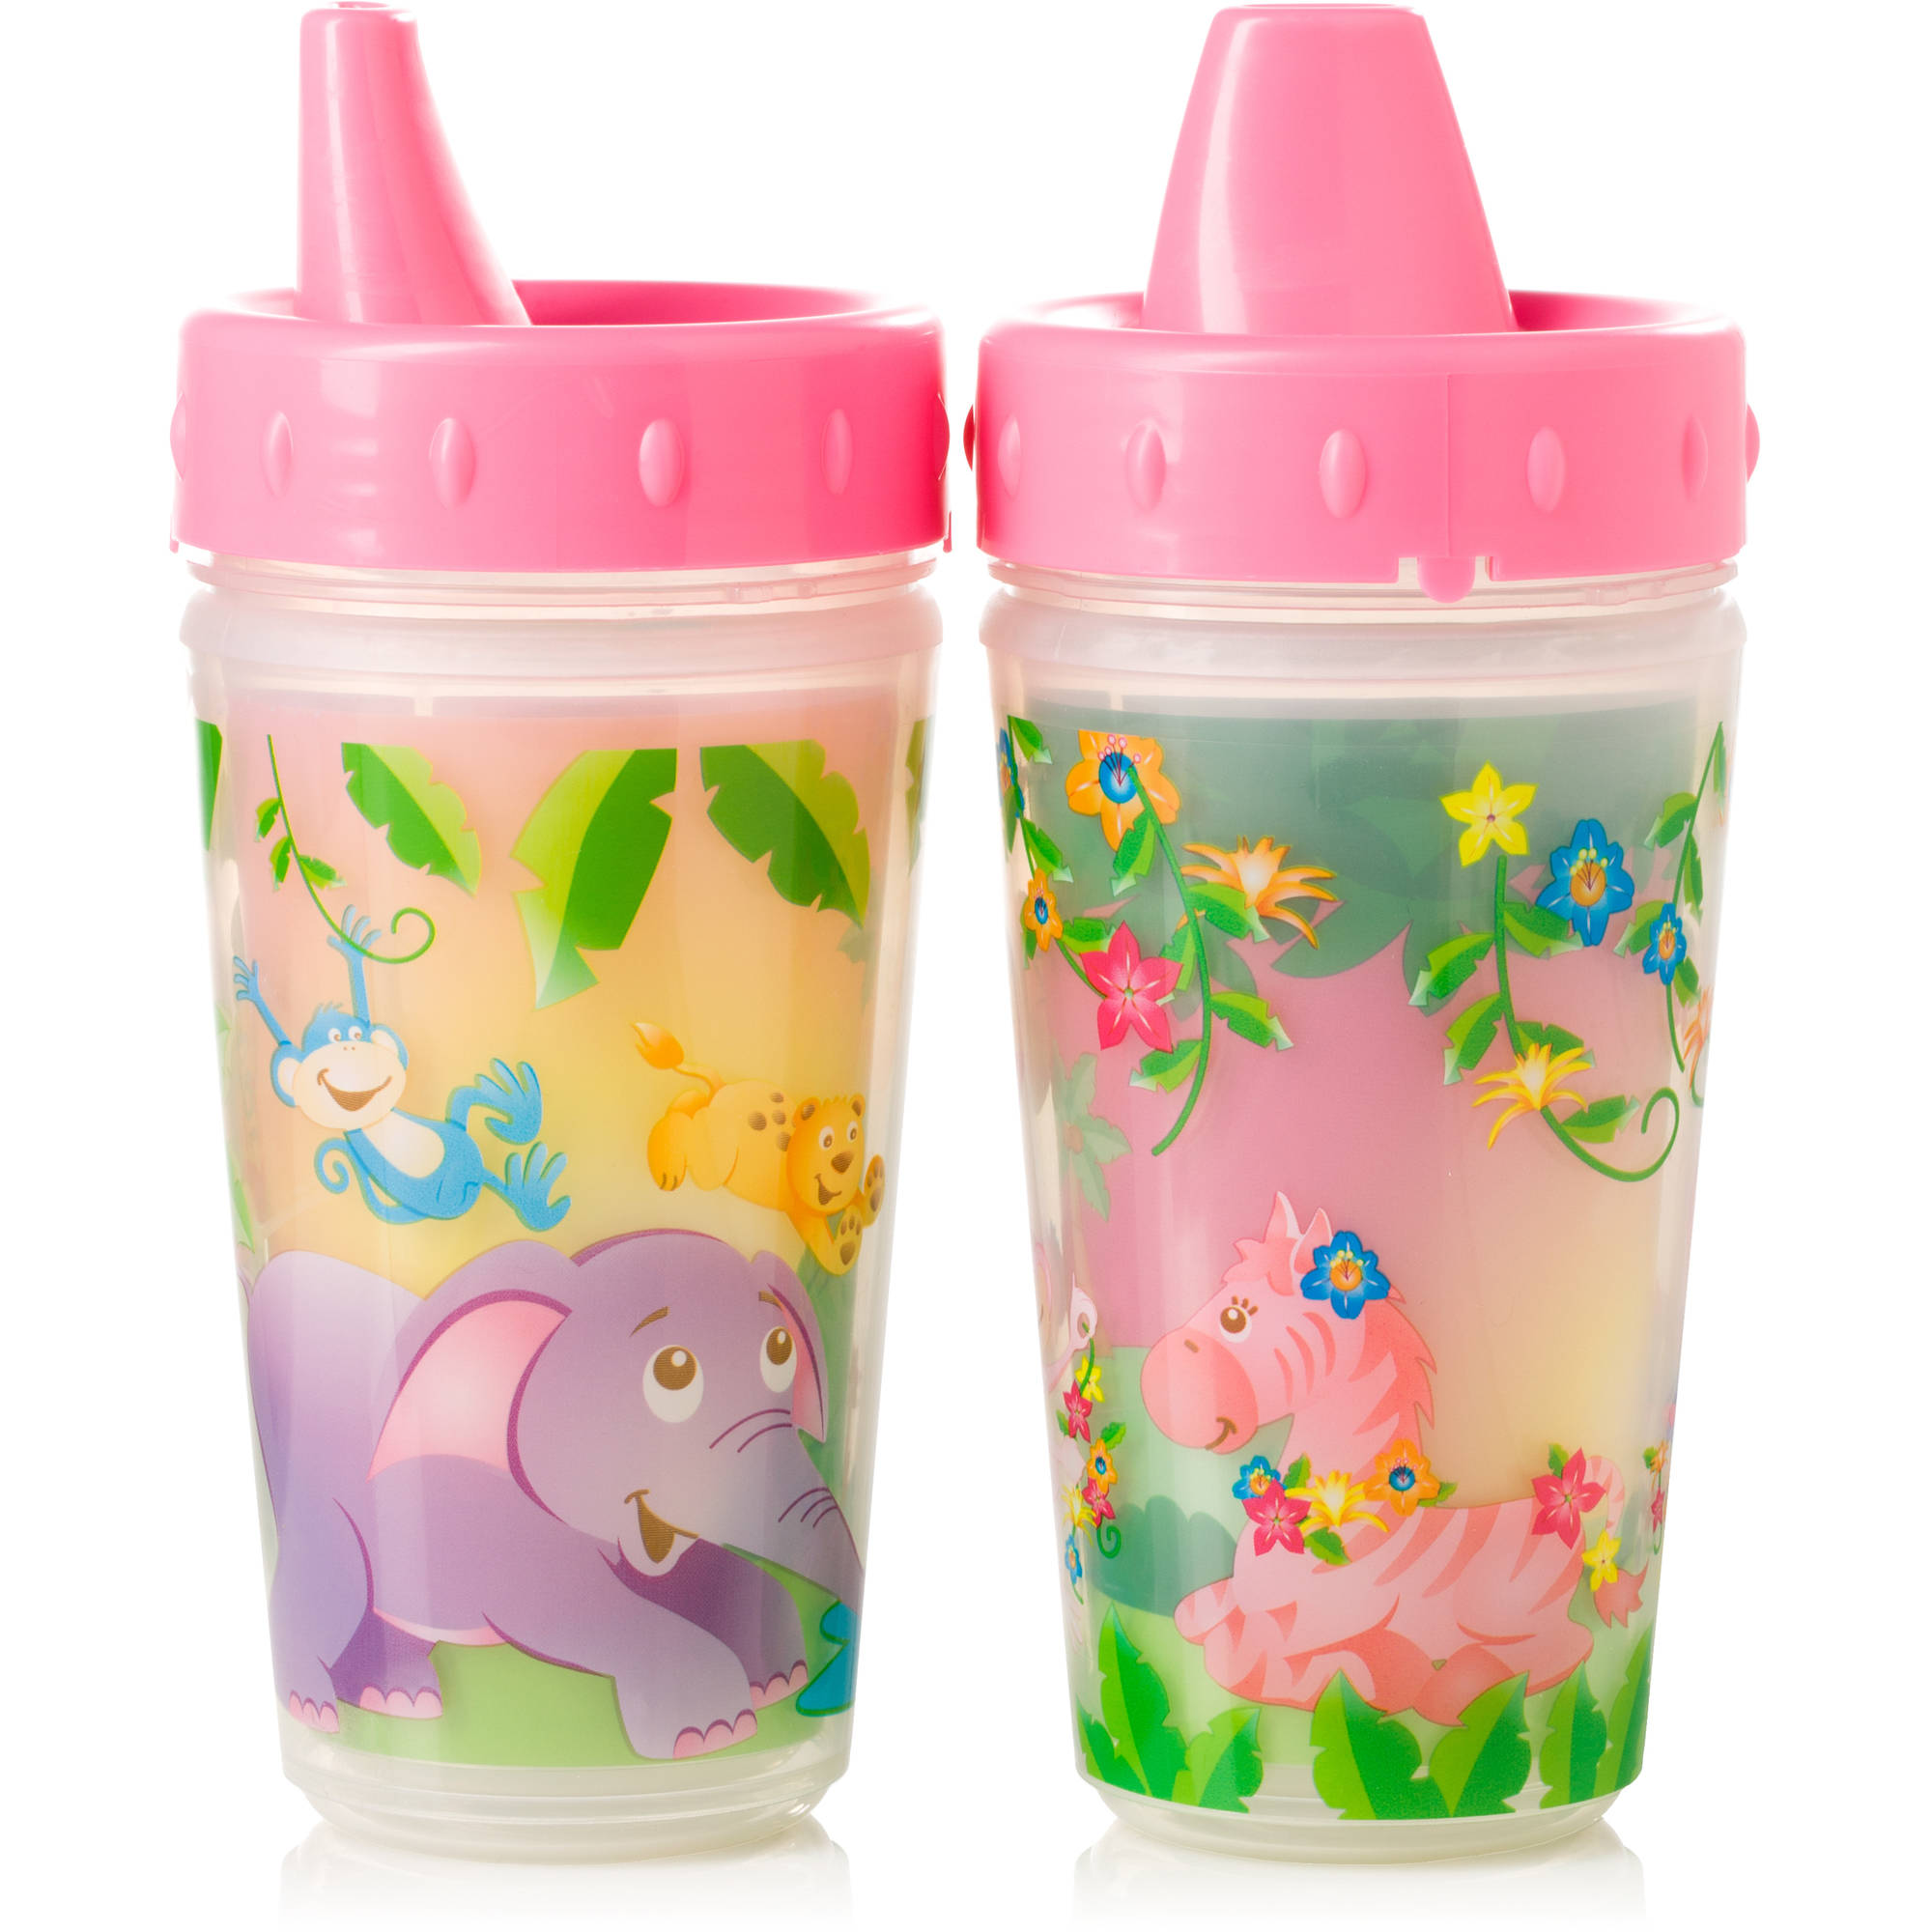 Evenflo Zoo Friends Insulated Sippy Cup, 2-Pack, Girl, BPA-Free